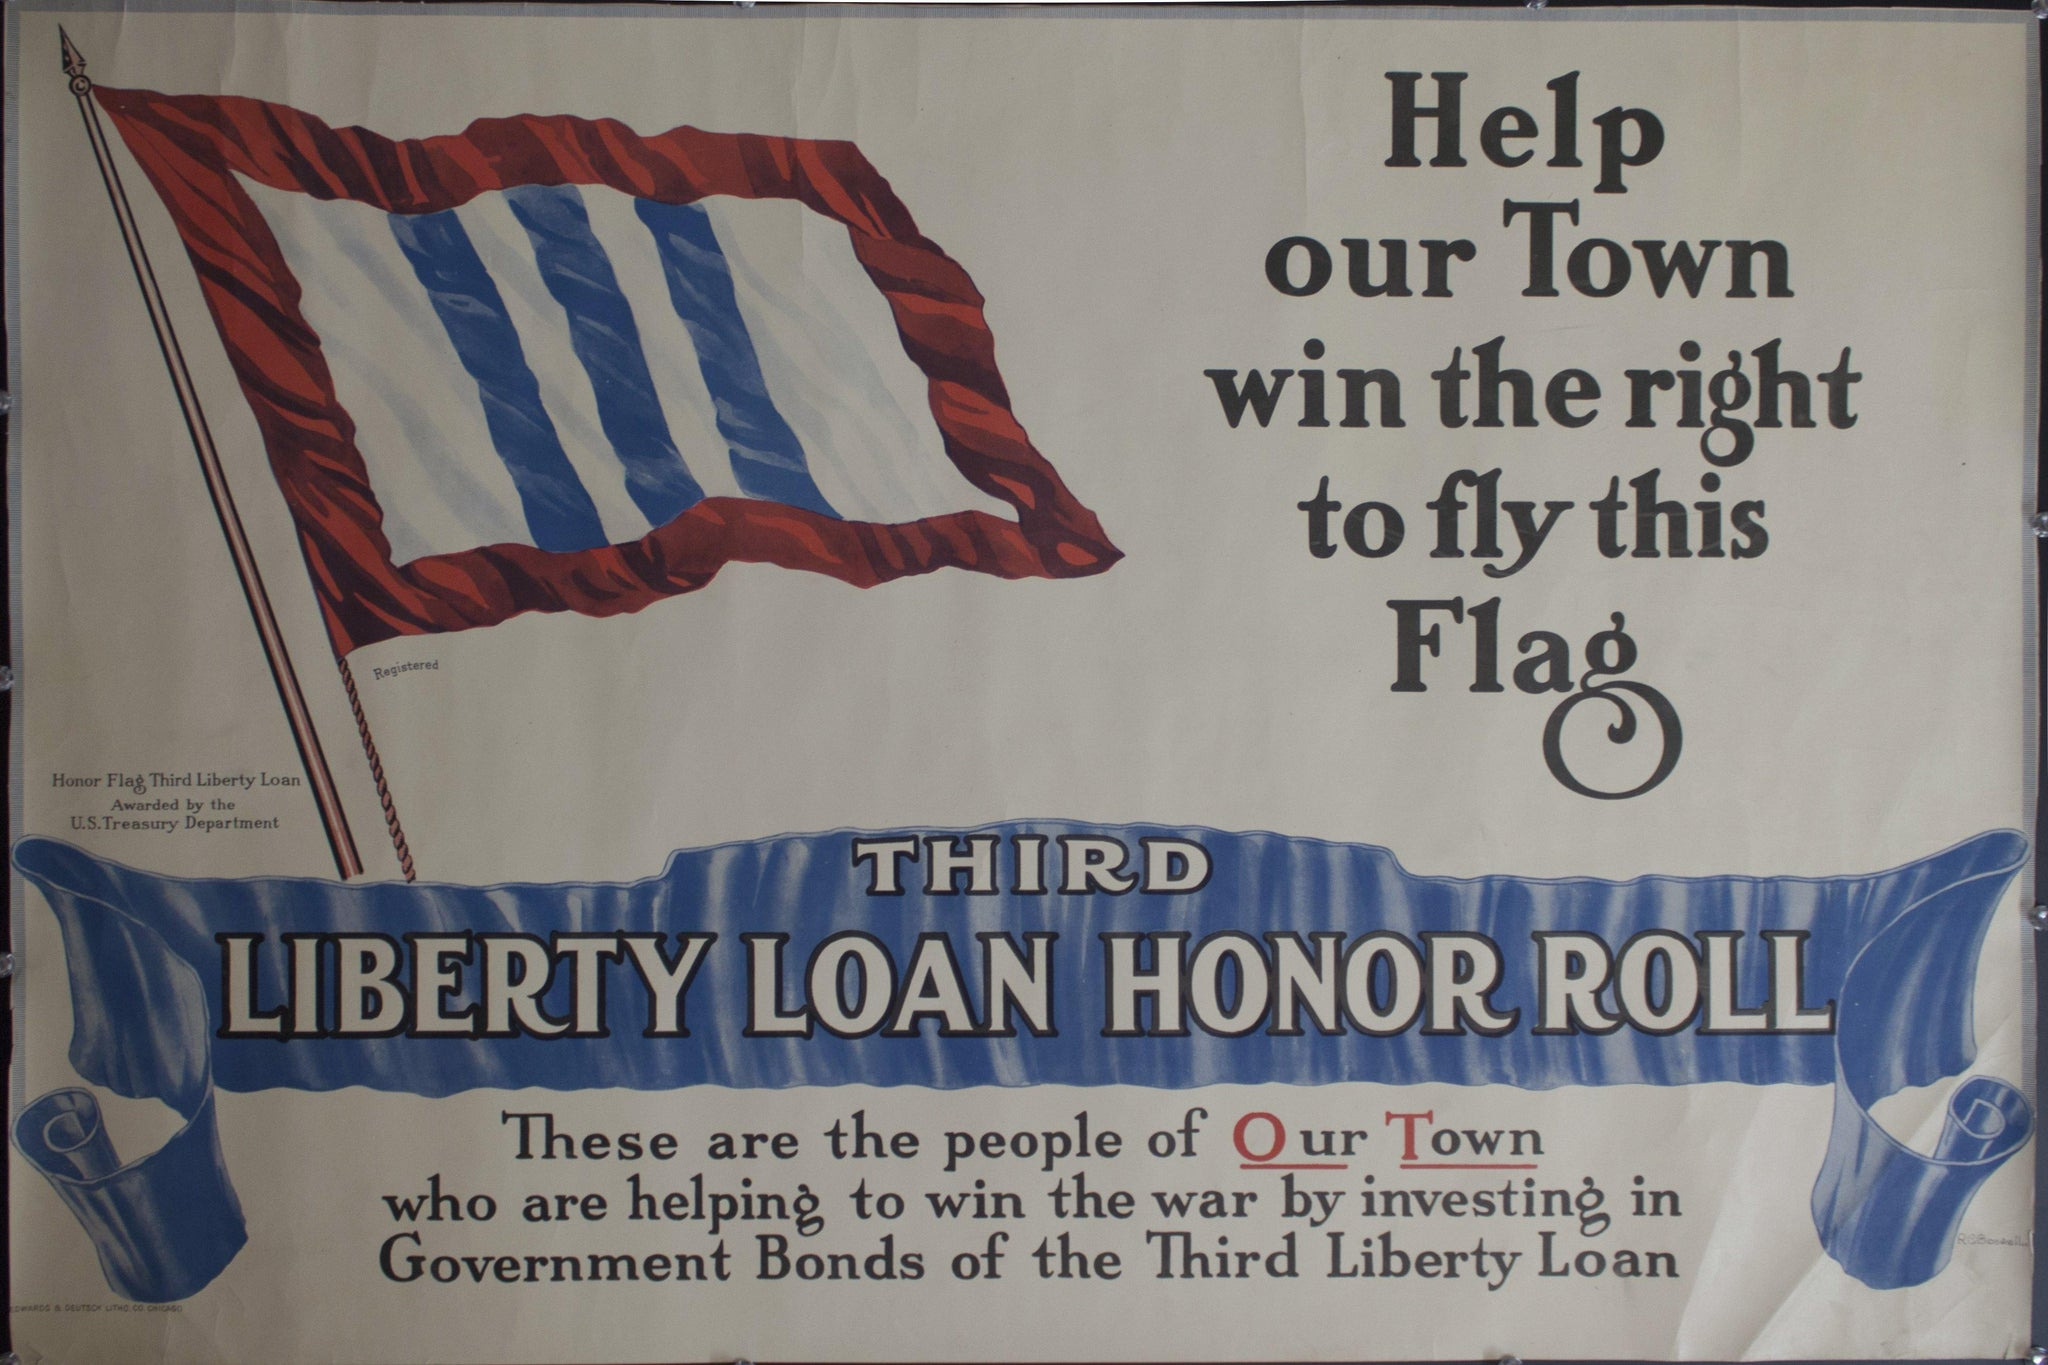 1917 Help our Town win the right to fly this Flag | Third Liberty Loan Honor Roll